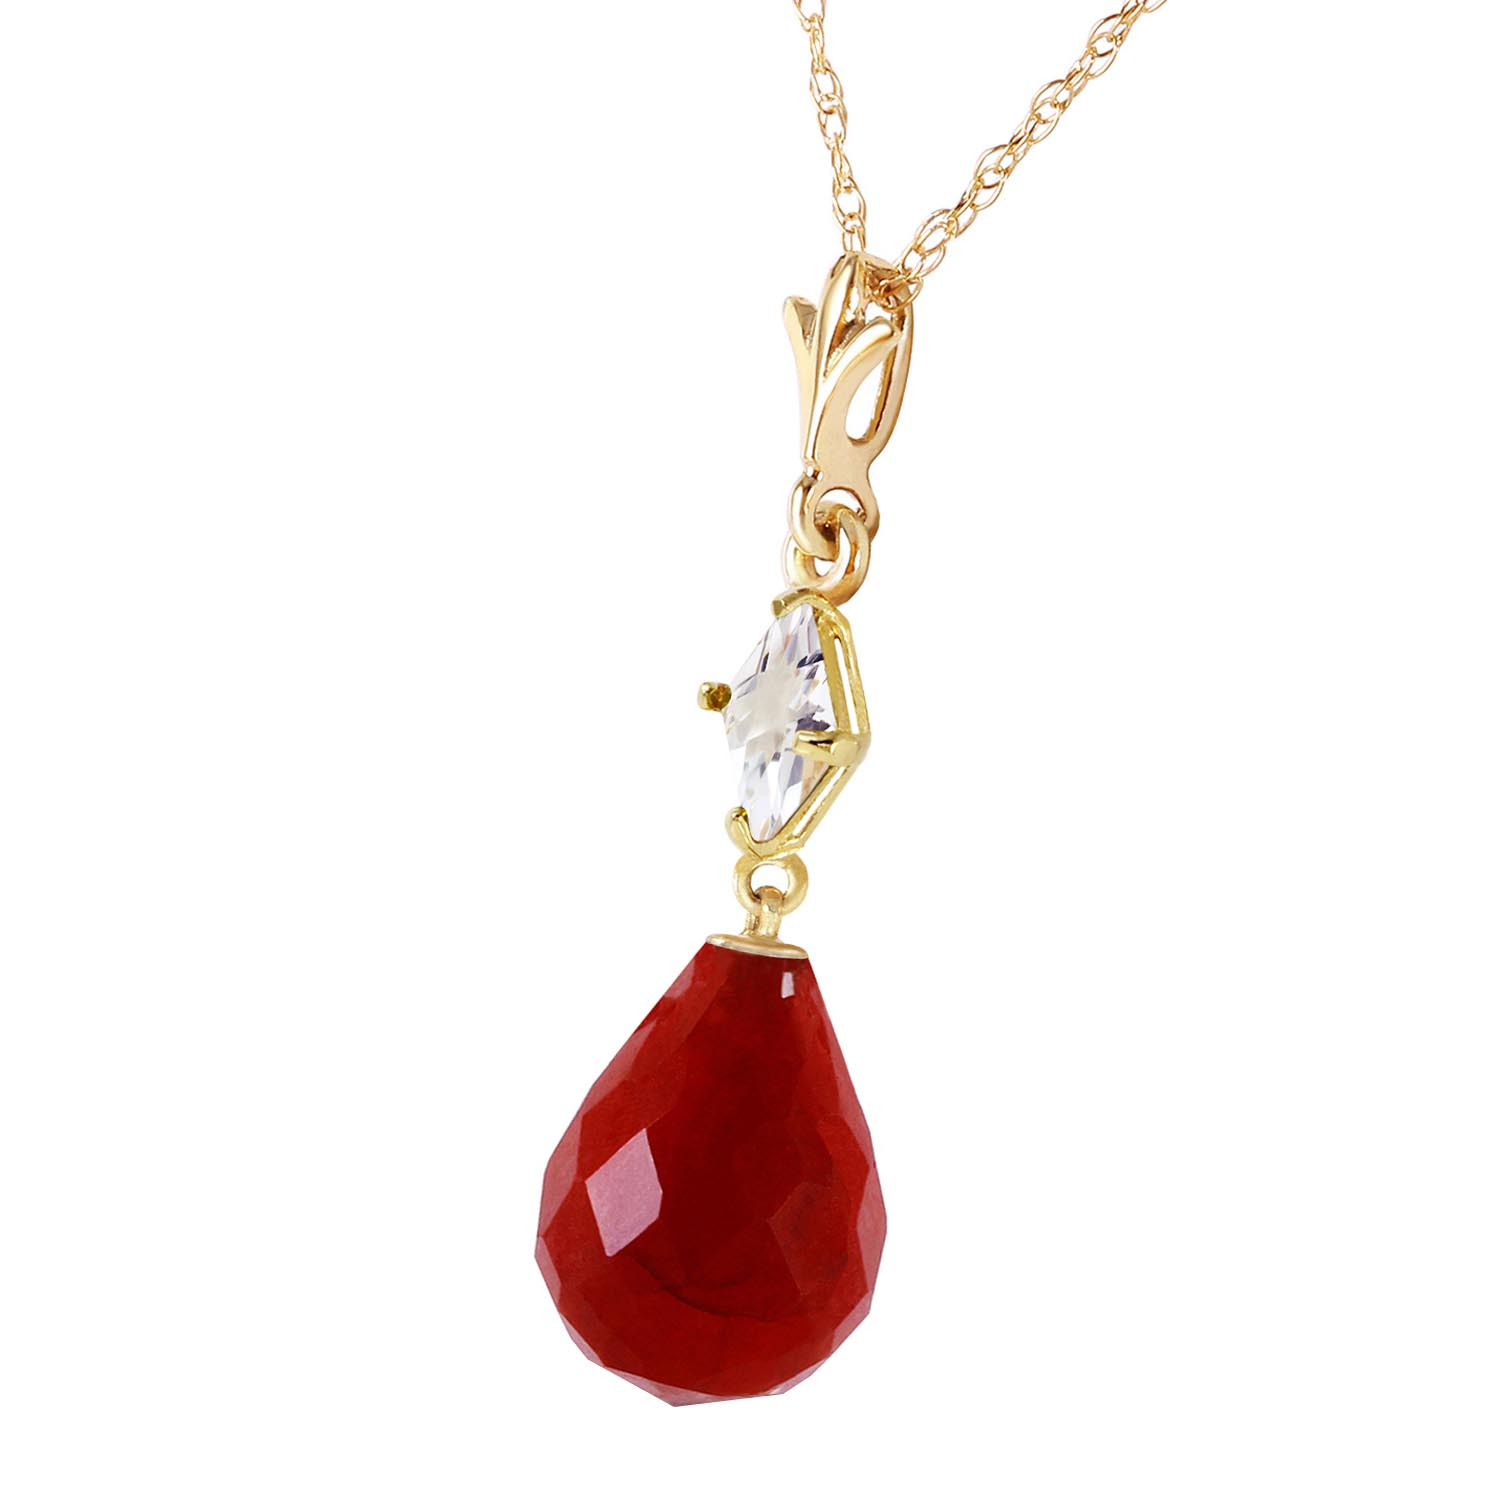 Ruby and White Topaz Pendant Necklace 9.3ctw in 9ct Gold